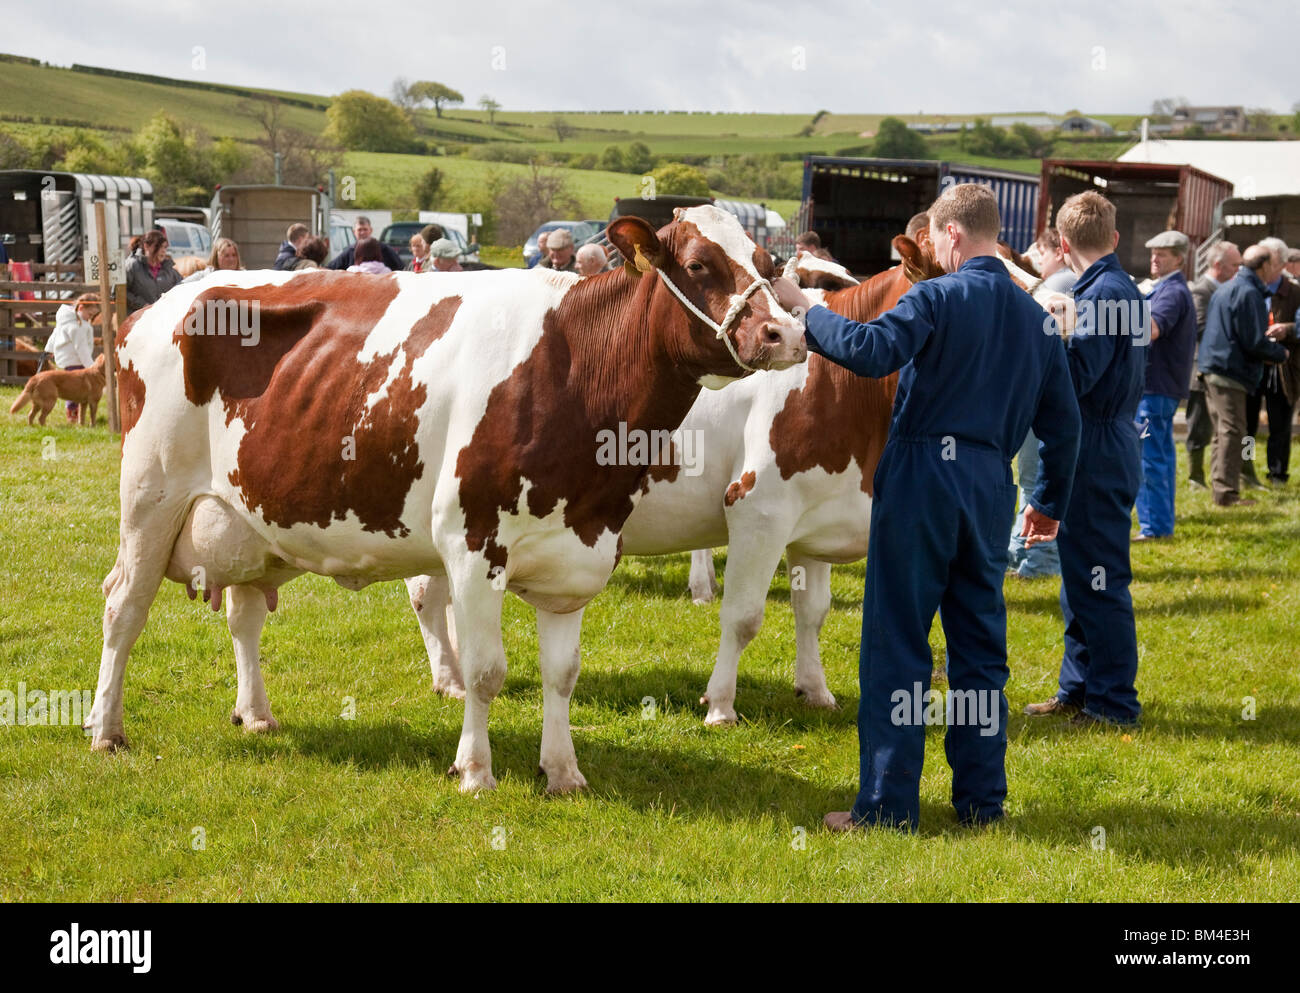 A group of Ayrshire milk cattle with their owners competing at a cattle show. Stock Photo